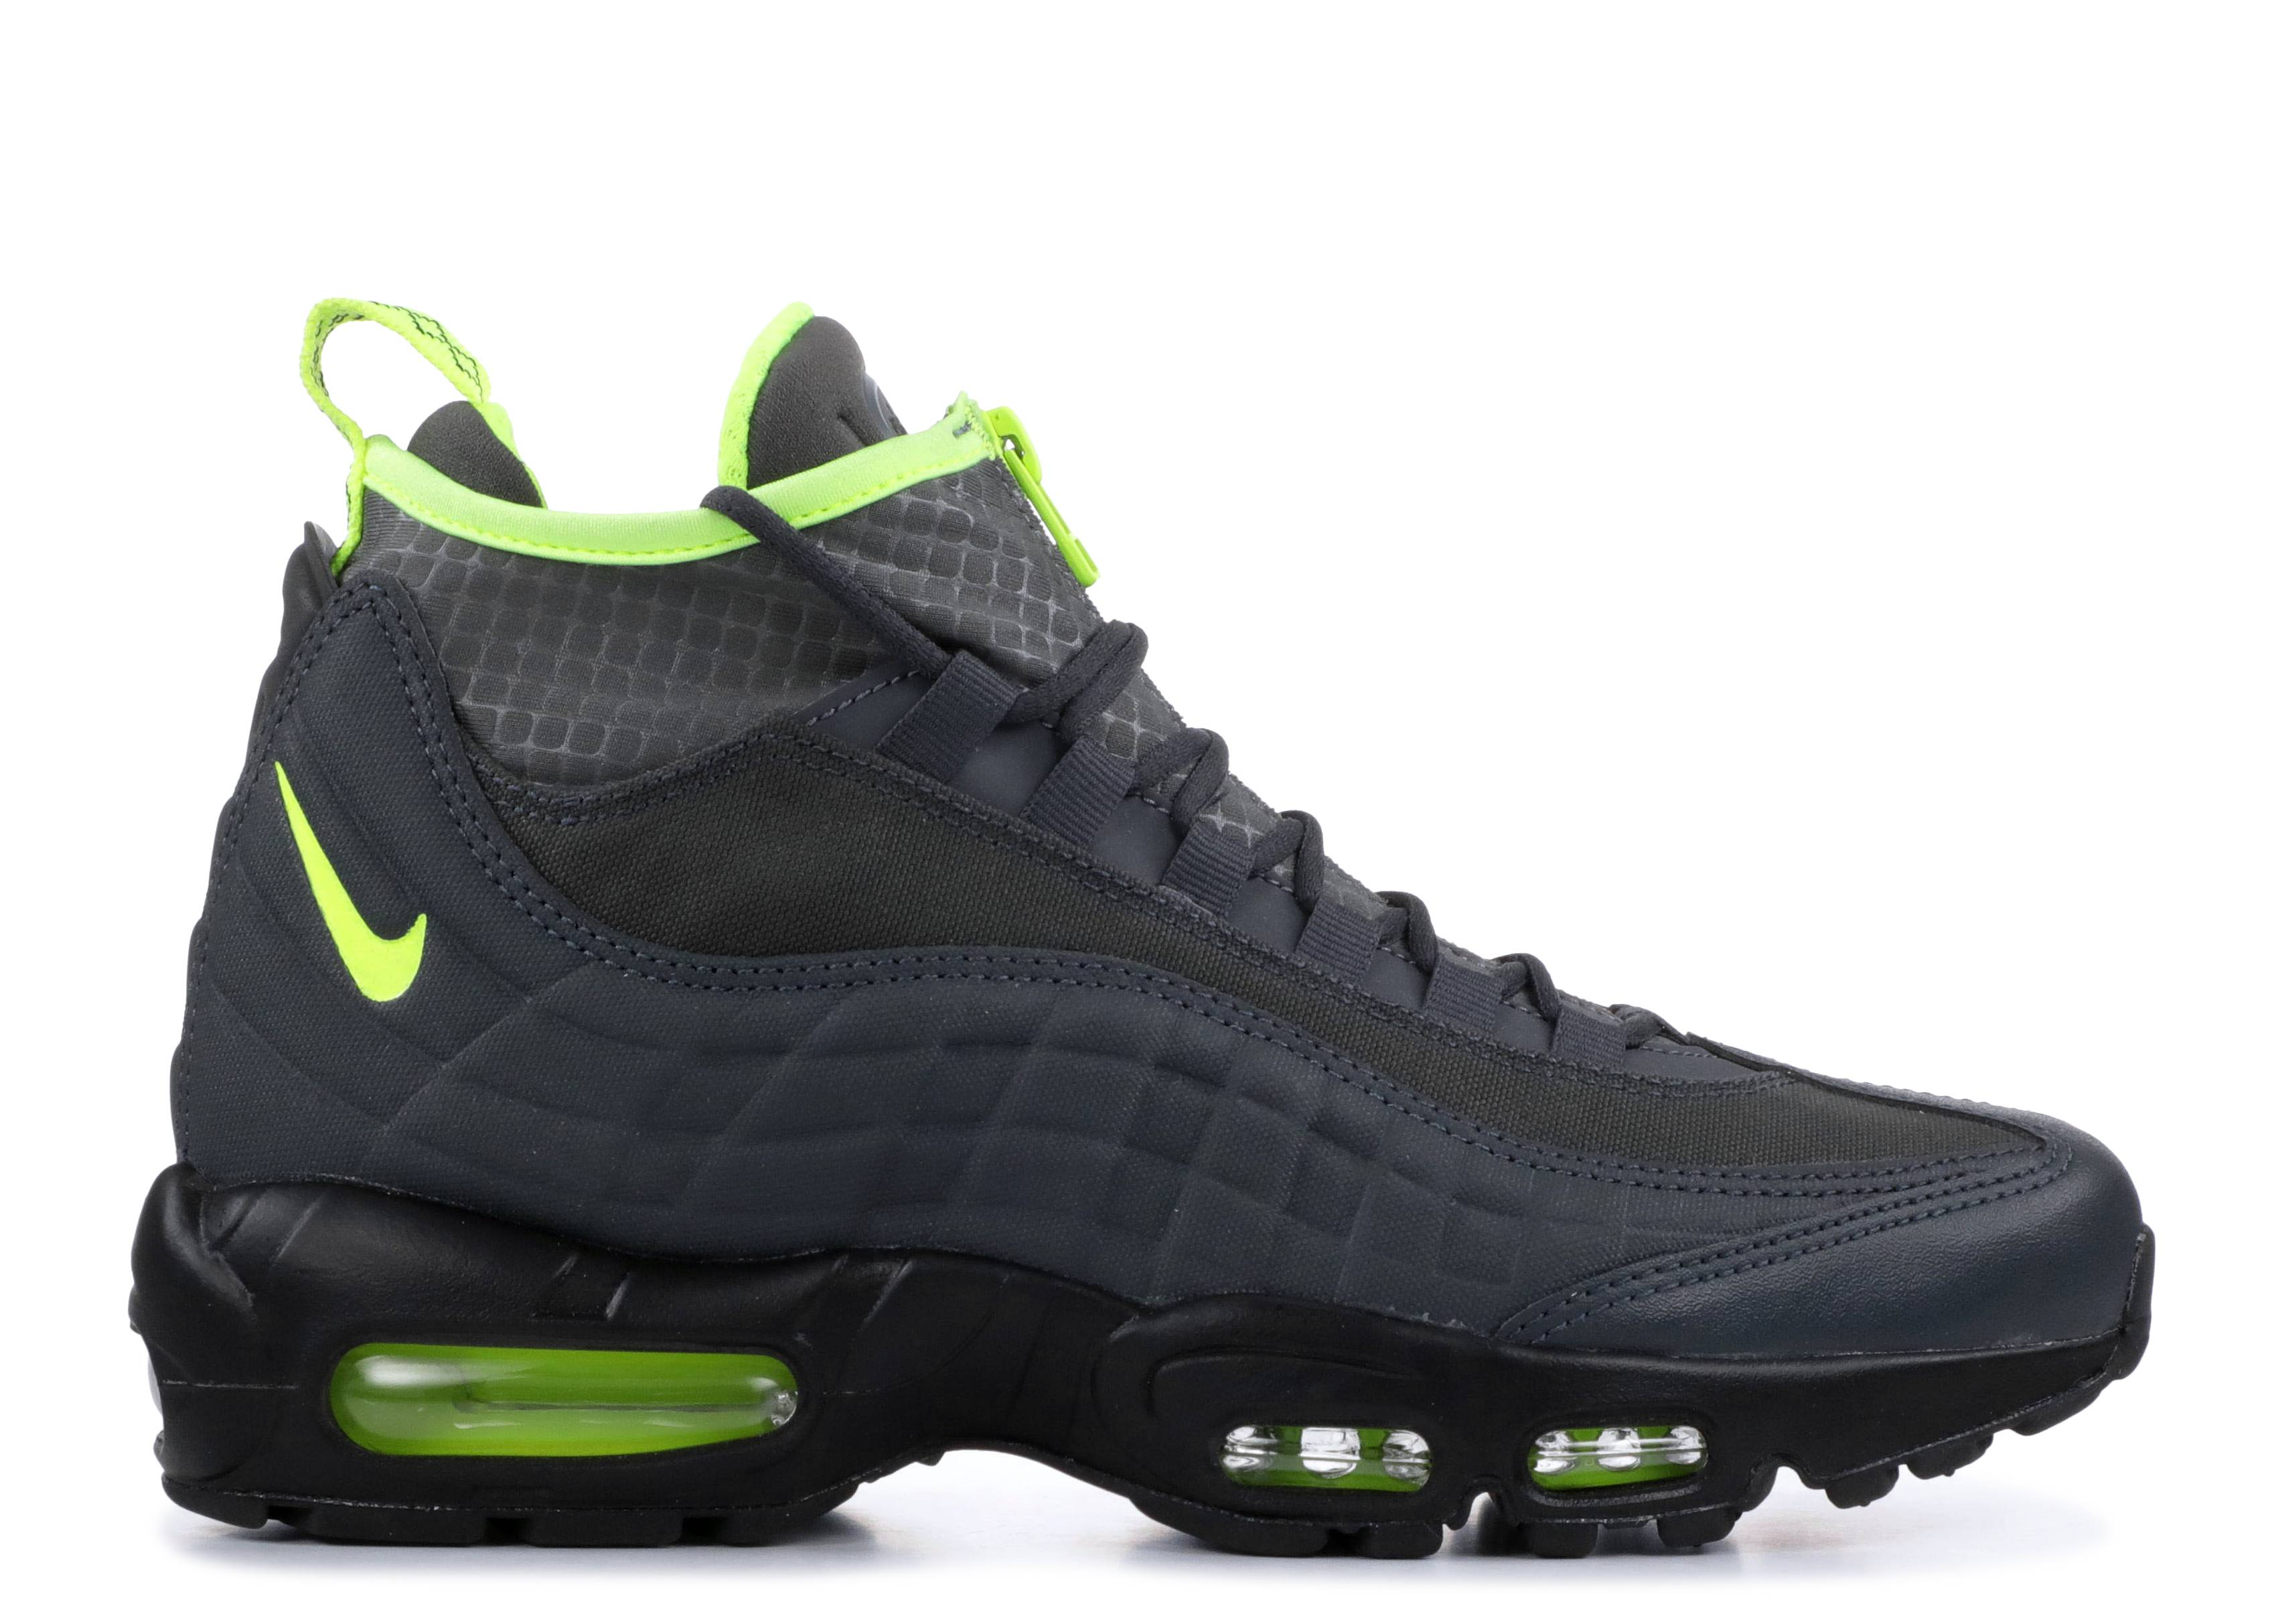 466a83abdb Nike Air Max 95 Sneakerboot - Nike - 806809 003 - anthracite/volt ...